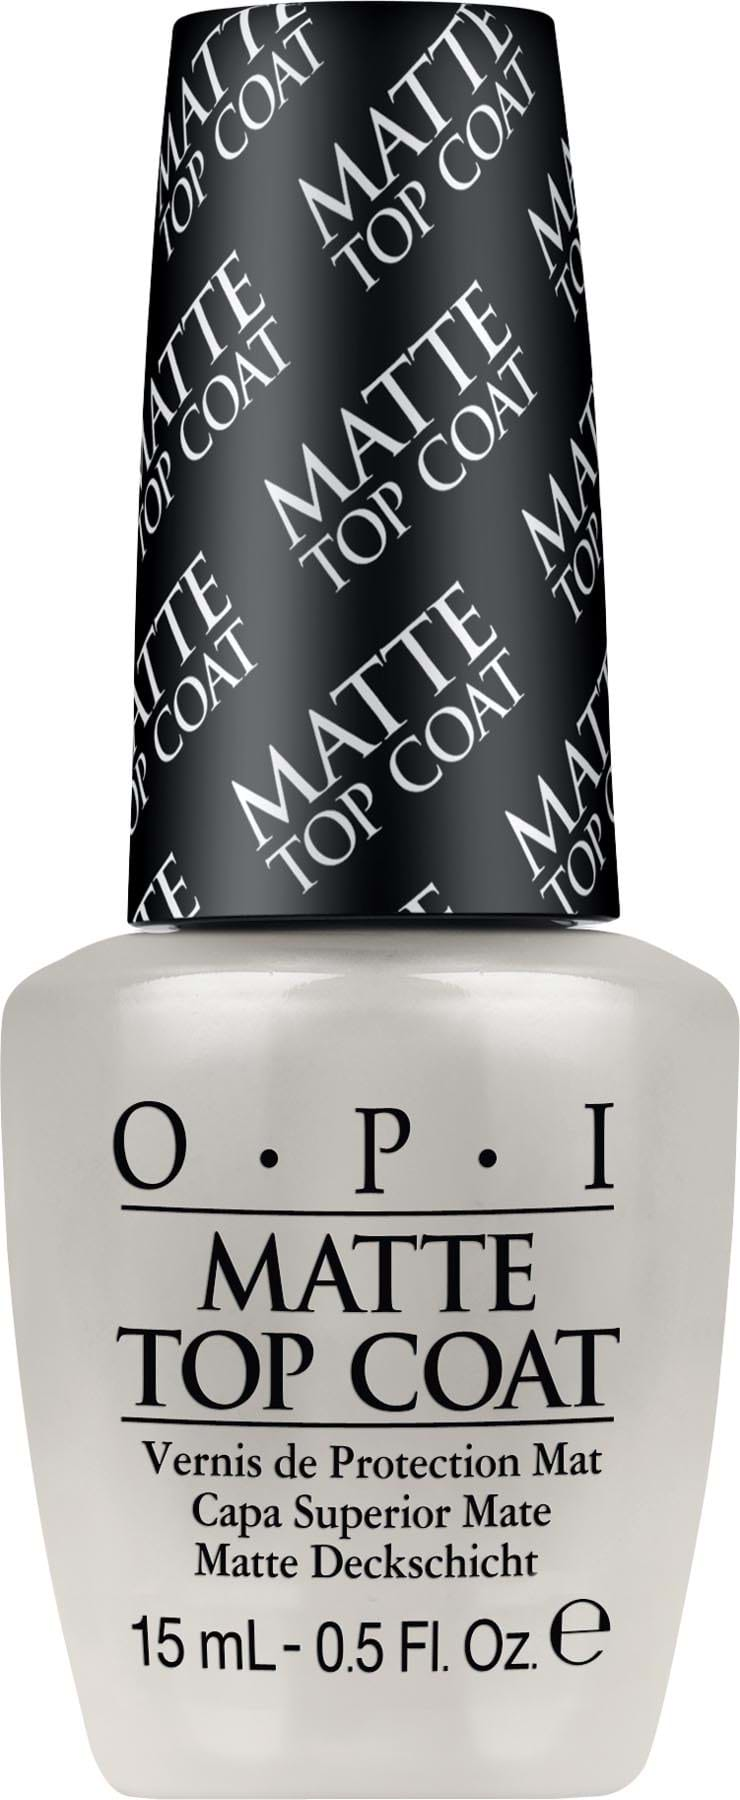 OPI Nail Care Matte Top Coat 15 ml